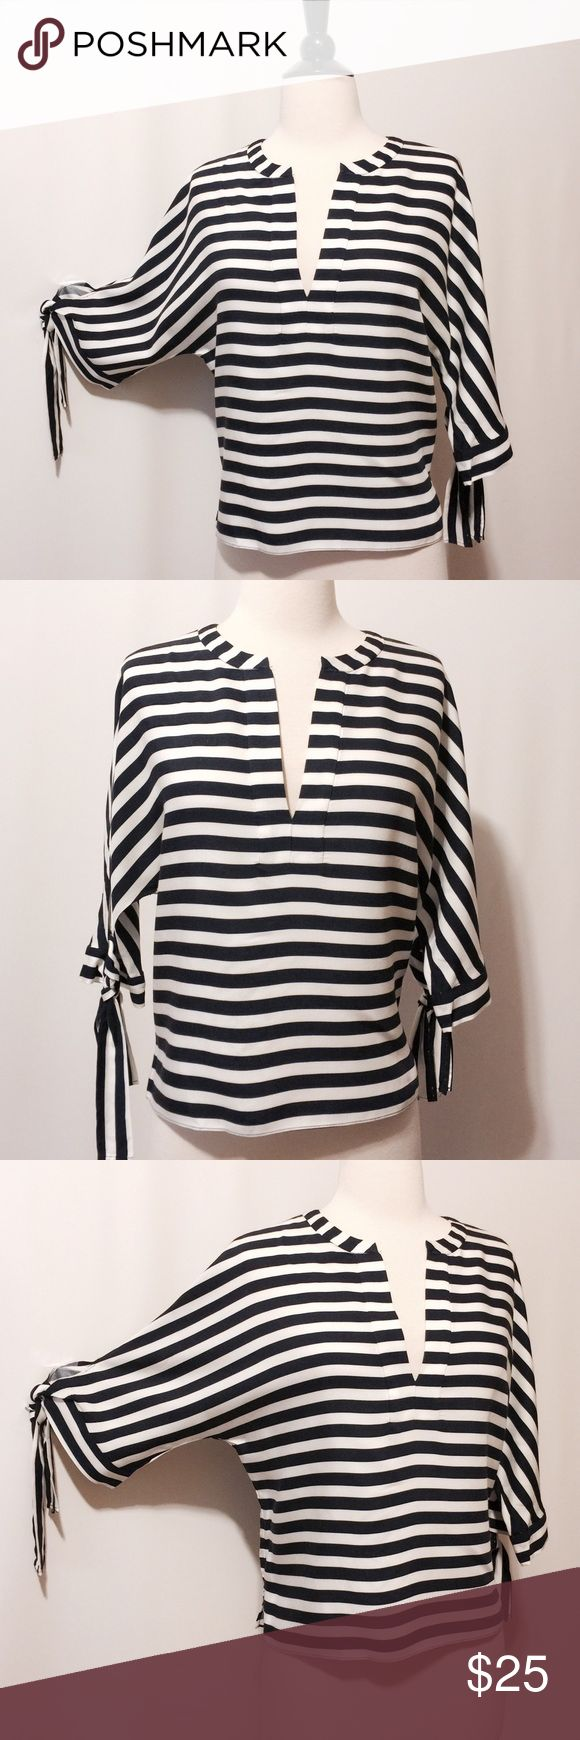 """HP  Zara Navy & White Stripe Blouse NWOT  11/5 Best in Tops Host Pick by @ginger_nj  Amazing! Nautically stripes, batwing three quarter sleeves with tie, side slits. 100% Viscose Dry clean only 40"""" bust 22""""overall length Zara Tops Blouses"""